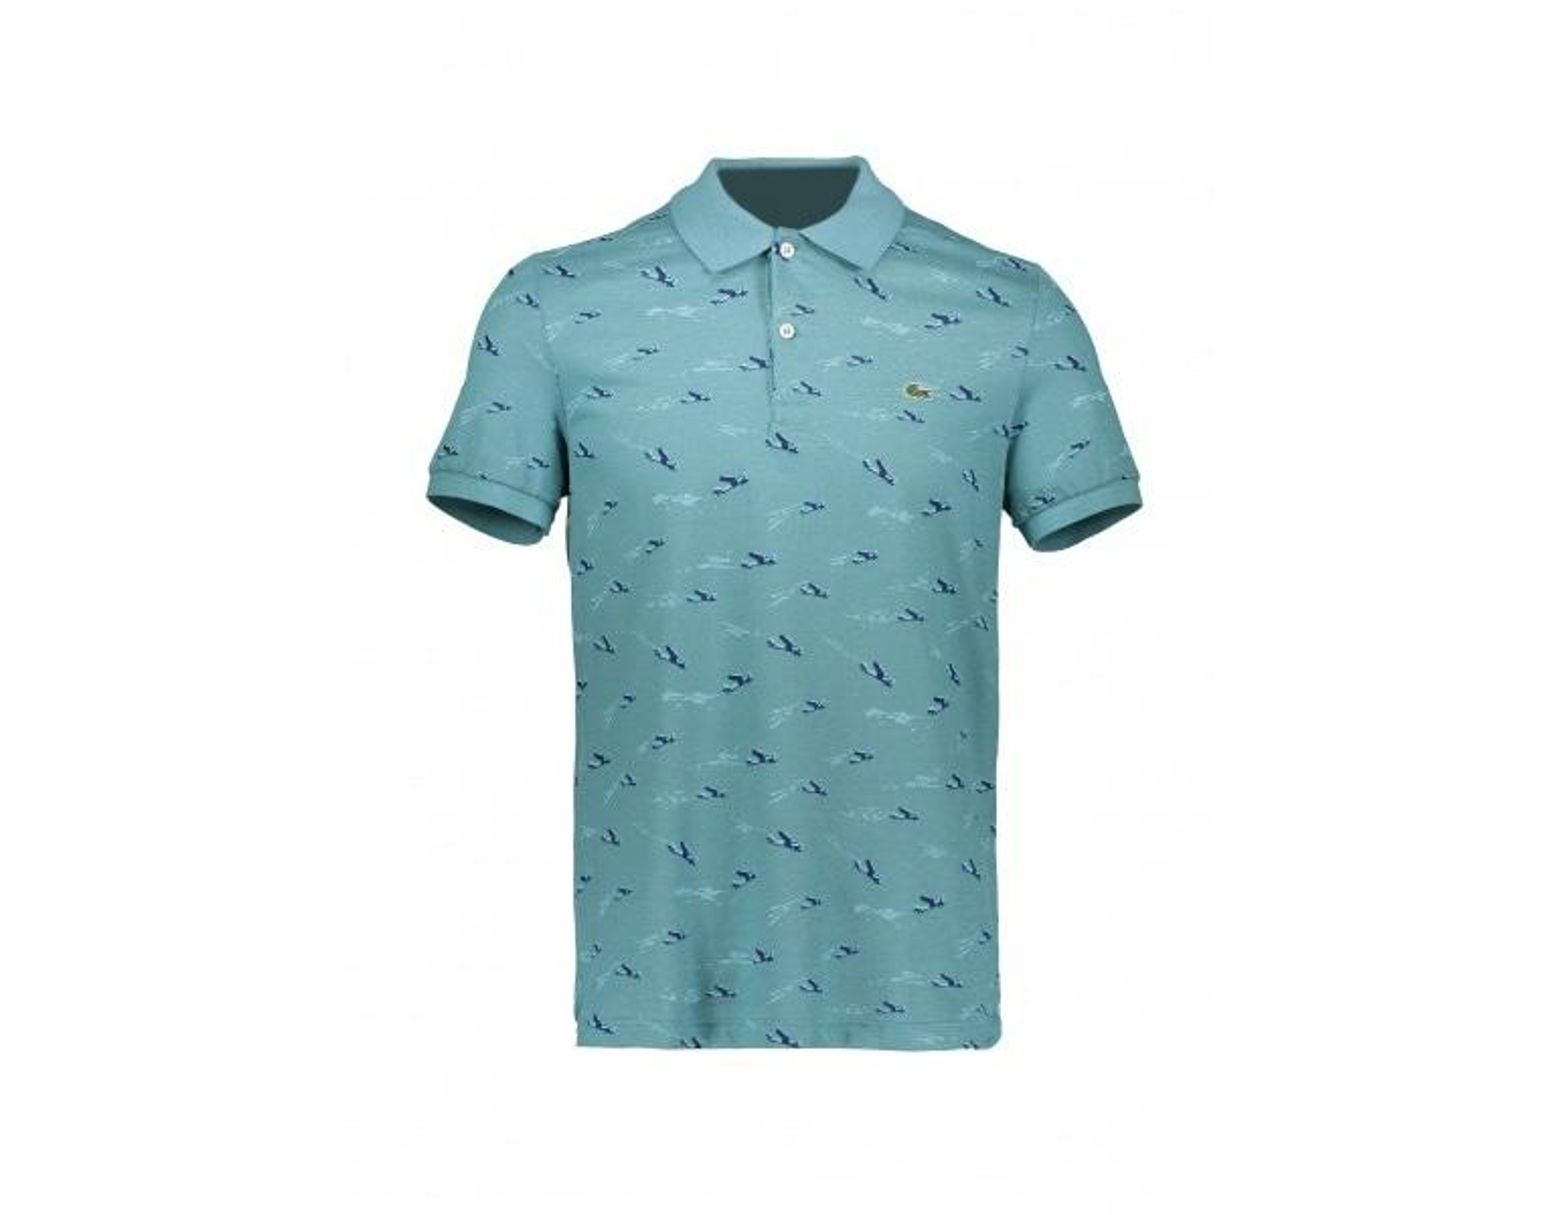 6f038d9a2 Lacoste Airplane Print Polo in Blue for Men - Lyst